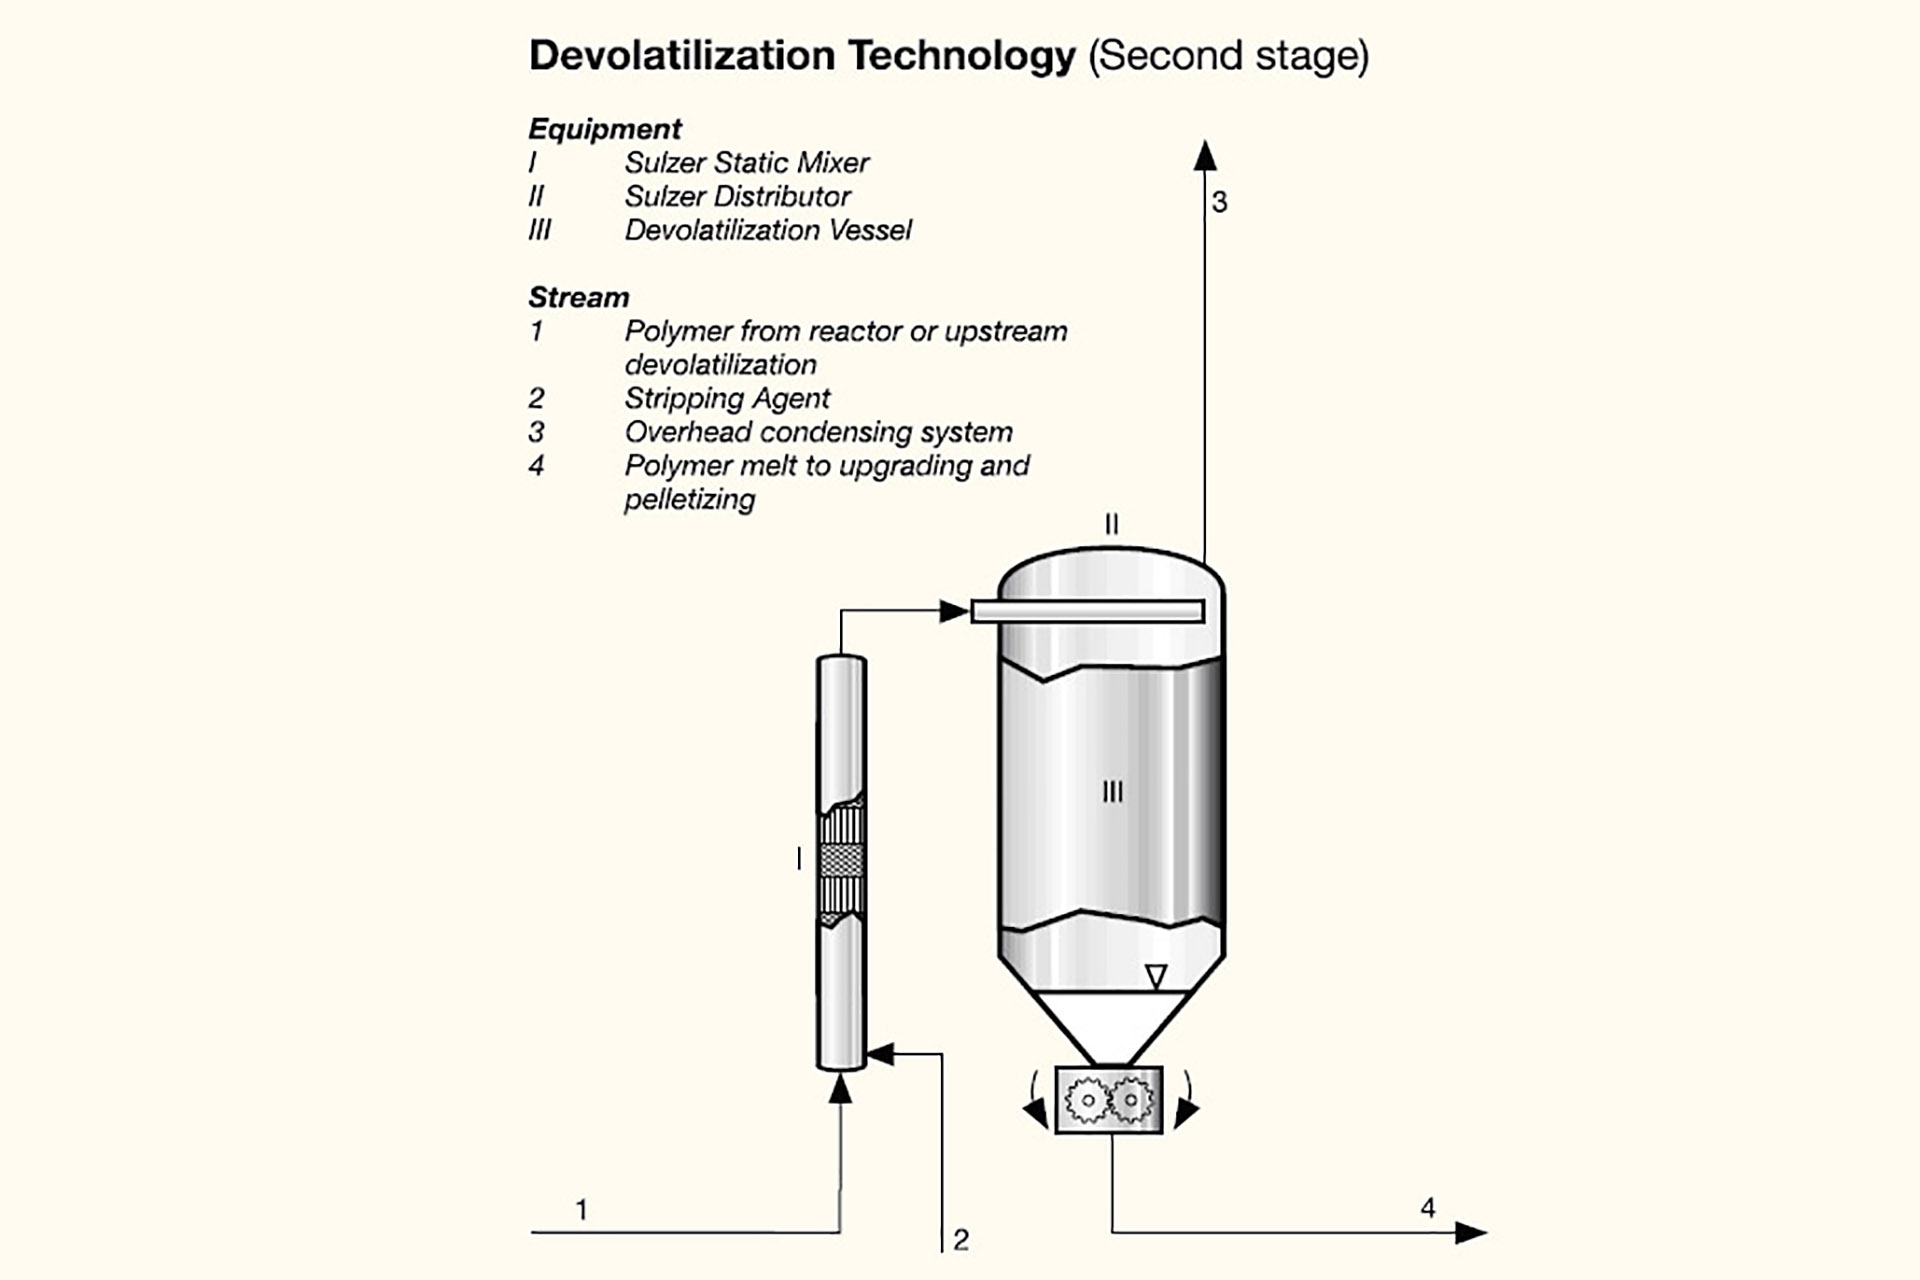 Graphic showing second stage of devolatilization technology